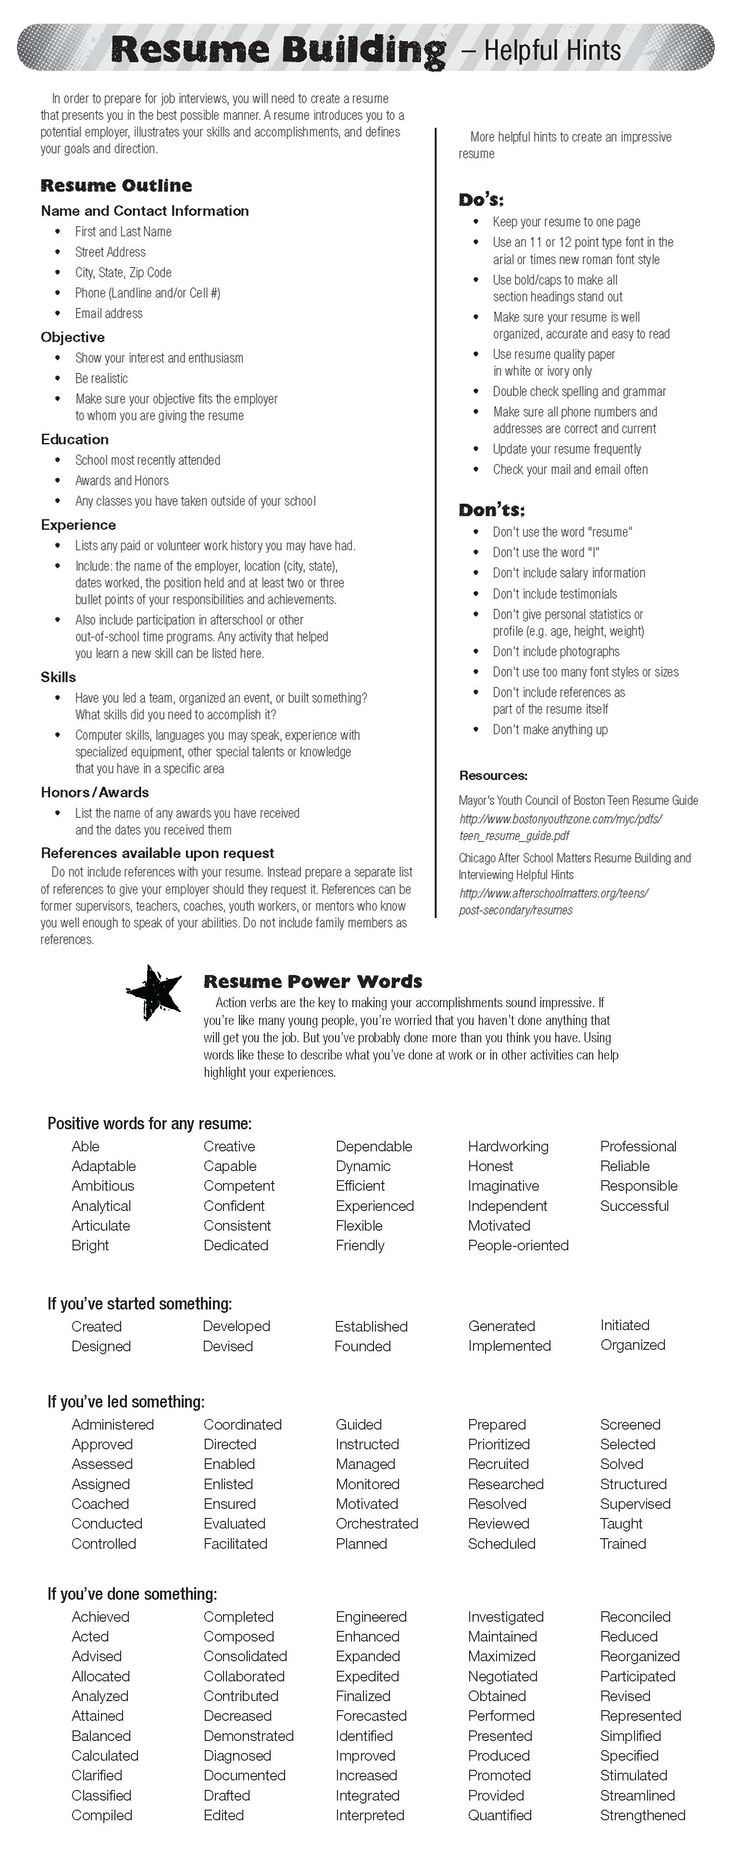 Picnictoimpeachus  Marvelous  Ideas About Resume On Pinterest  Cv Format Resume Cv And  With Exciting  Ideas About Resume On Pinterest  Cv Format Resume Cv And Resume Templates With Amazing Cna Job Description For Resume Also Resume Templates For Google Docs In Addition Resume Help Free And Infographic Resume Template As Well As Icu Nurse Resume Additionally Words To Use On Resume From Pinterestcom With Picnictoimpeachus  Exciting  Ideas About Resume On Pinterest  Cv Format Resume Cv And  With Amazing  Ideas About Resume On Pinterest  Cv Format Resume Cv And Resume Templates And Marvelous Cna Job Description For Resume Also Resume Templates For Google Docs In Addition Resume Help Free From Pinterestcom